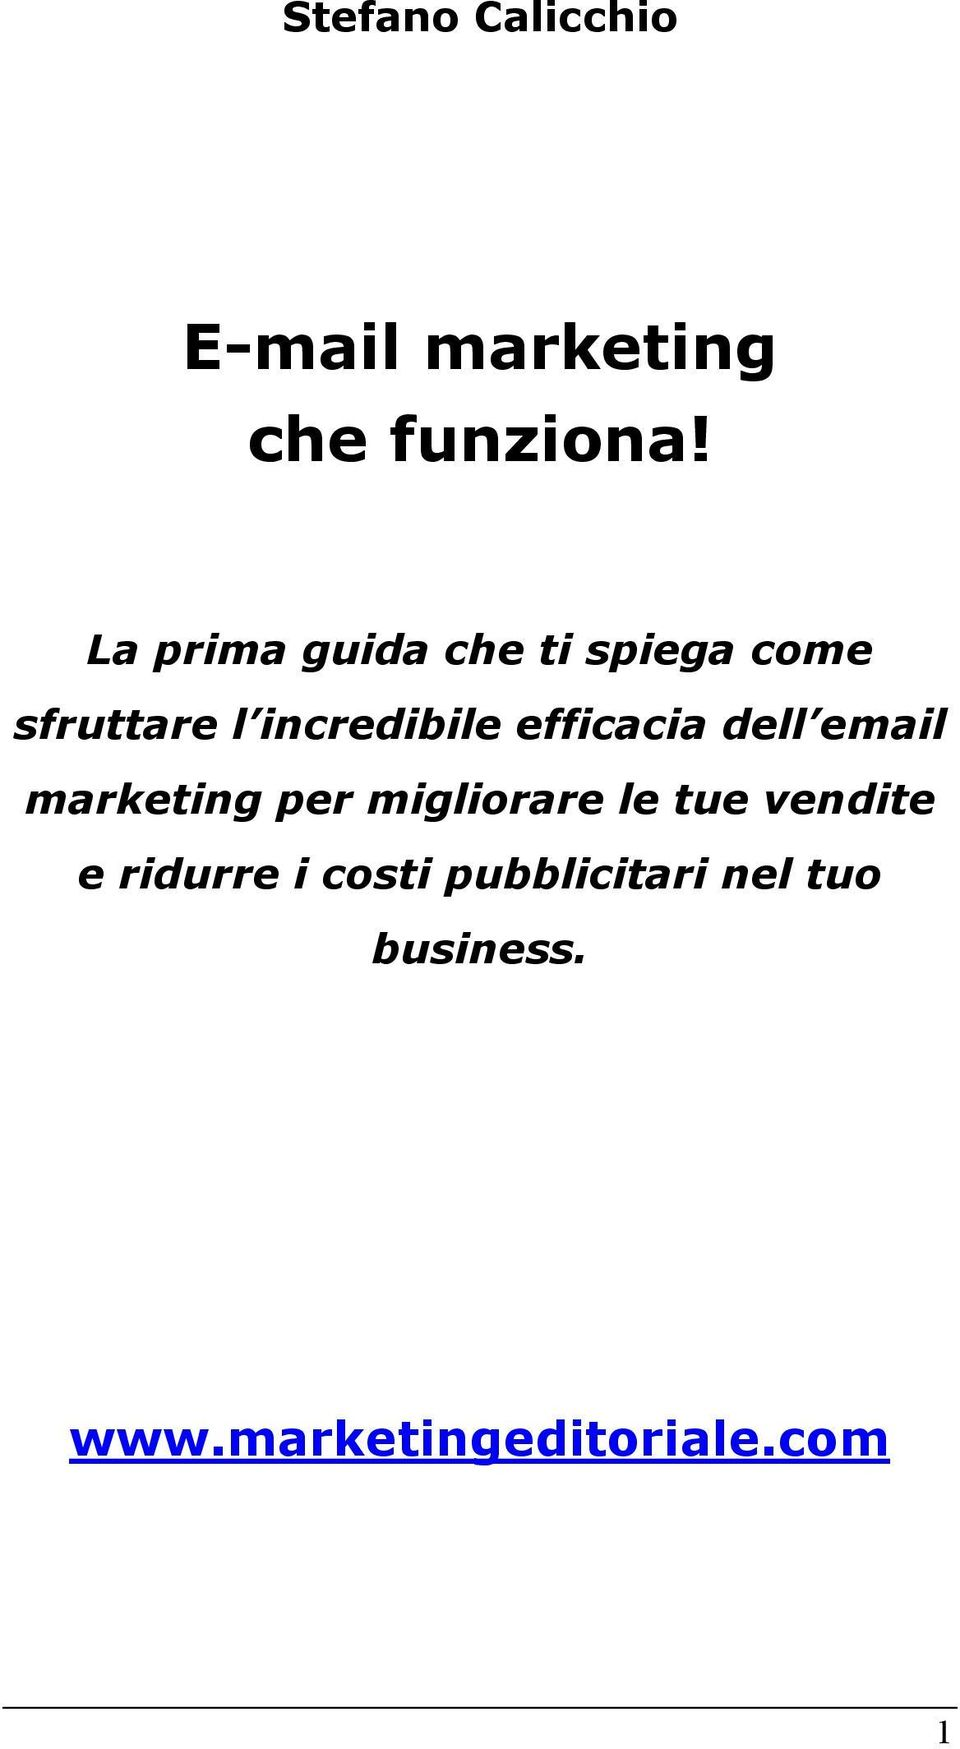 efficacia dell email marketing per migliorare le tue vendite